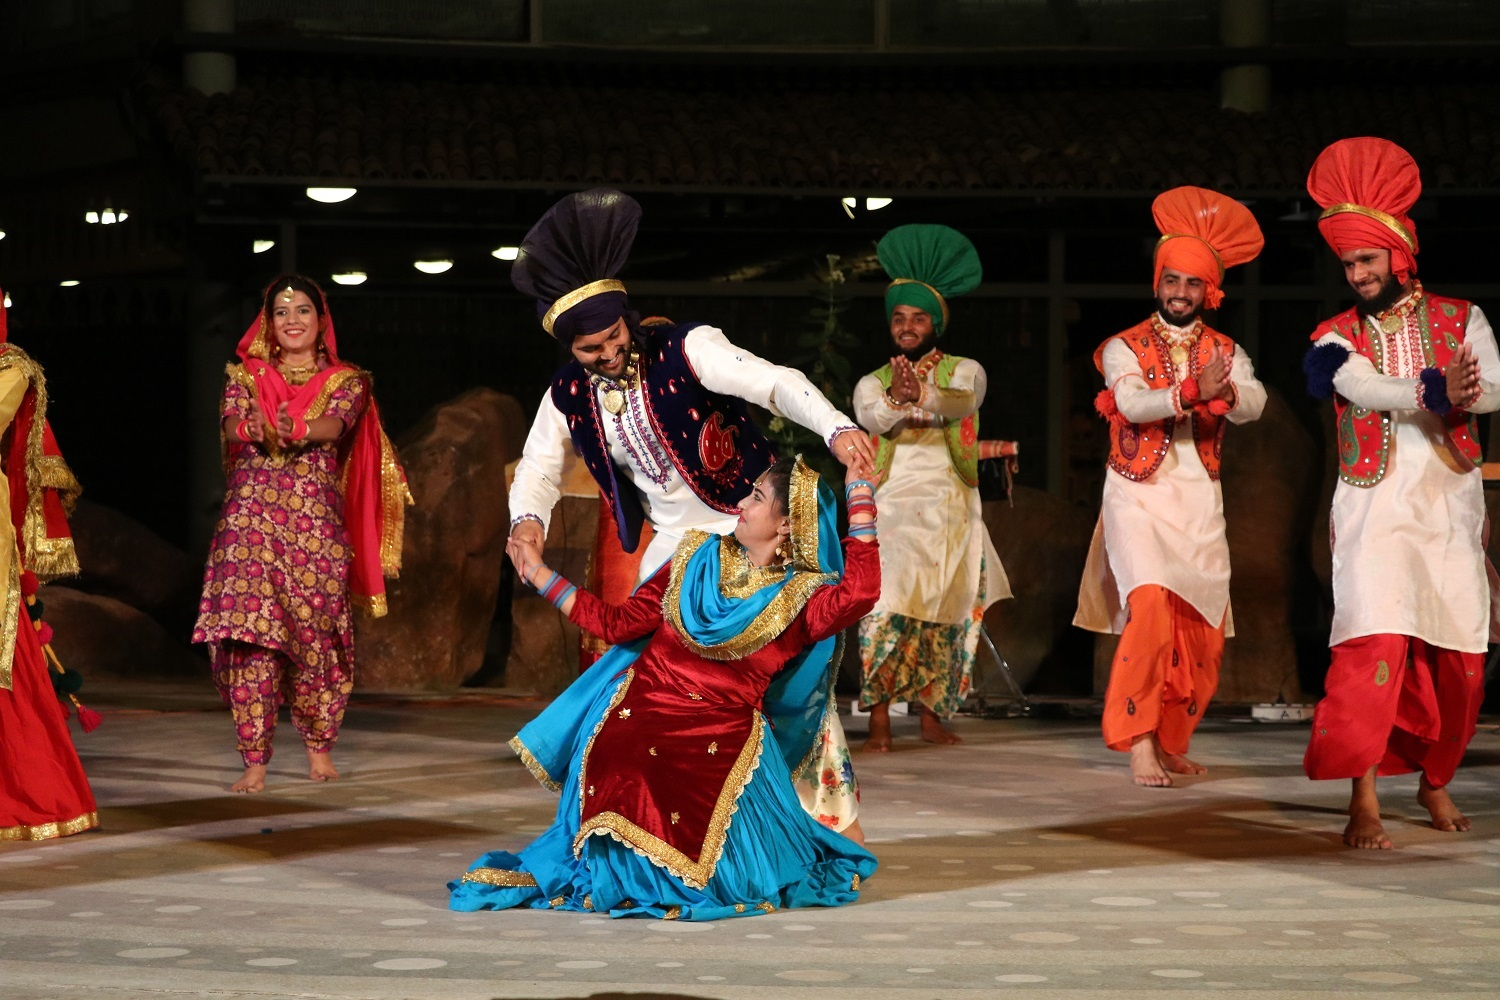 Apart from the traditional Bhangra, Giddha and Luddi were a fresh treat to  the audience. Performers also brought about a 300 year old story of Daaku  Jatt ...